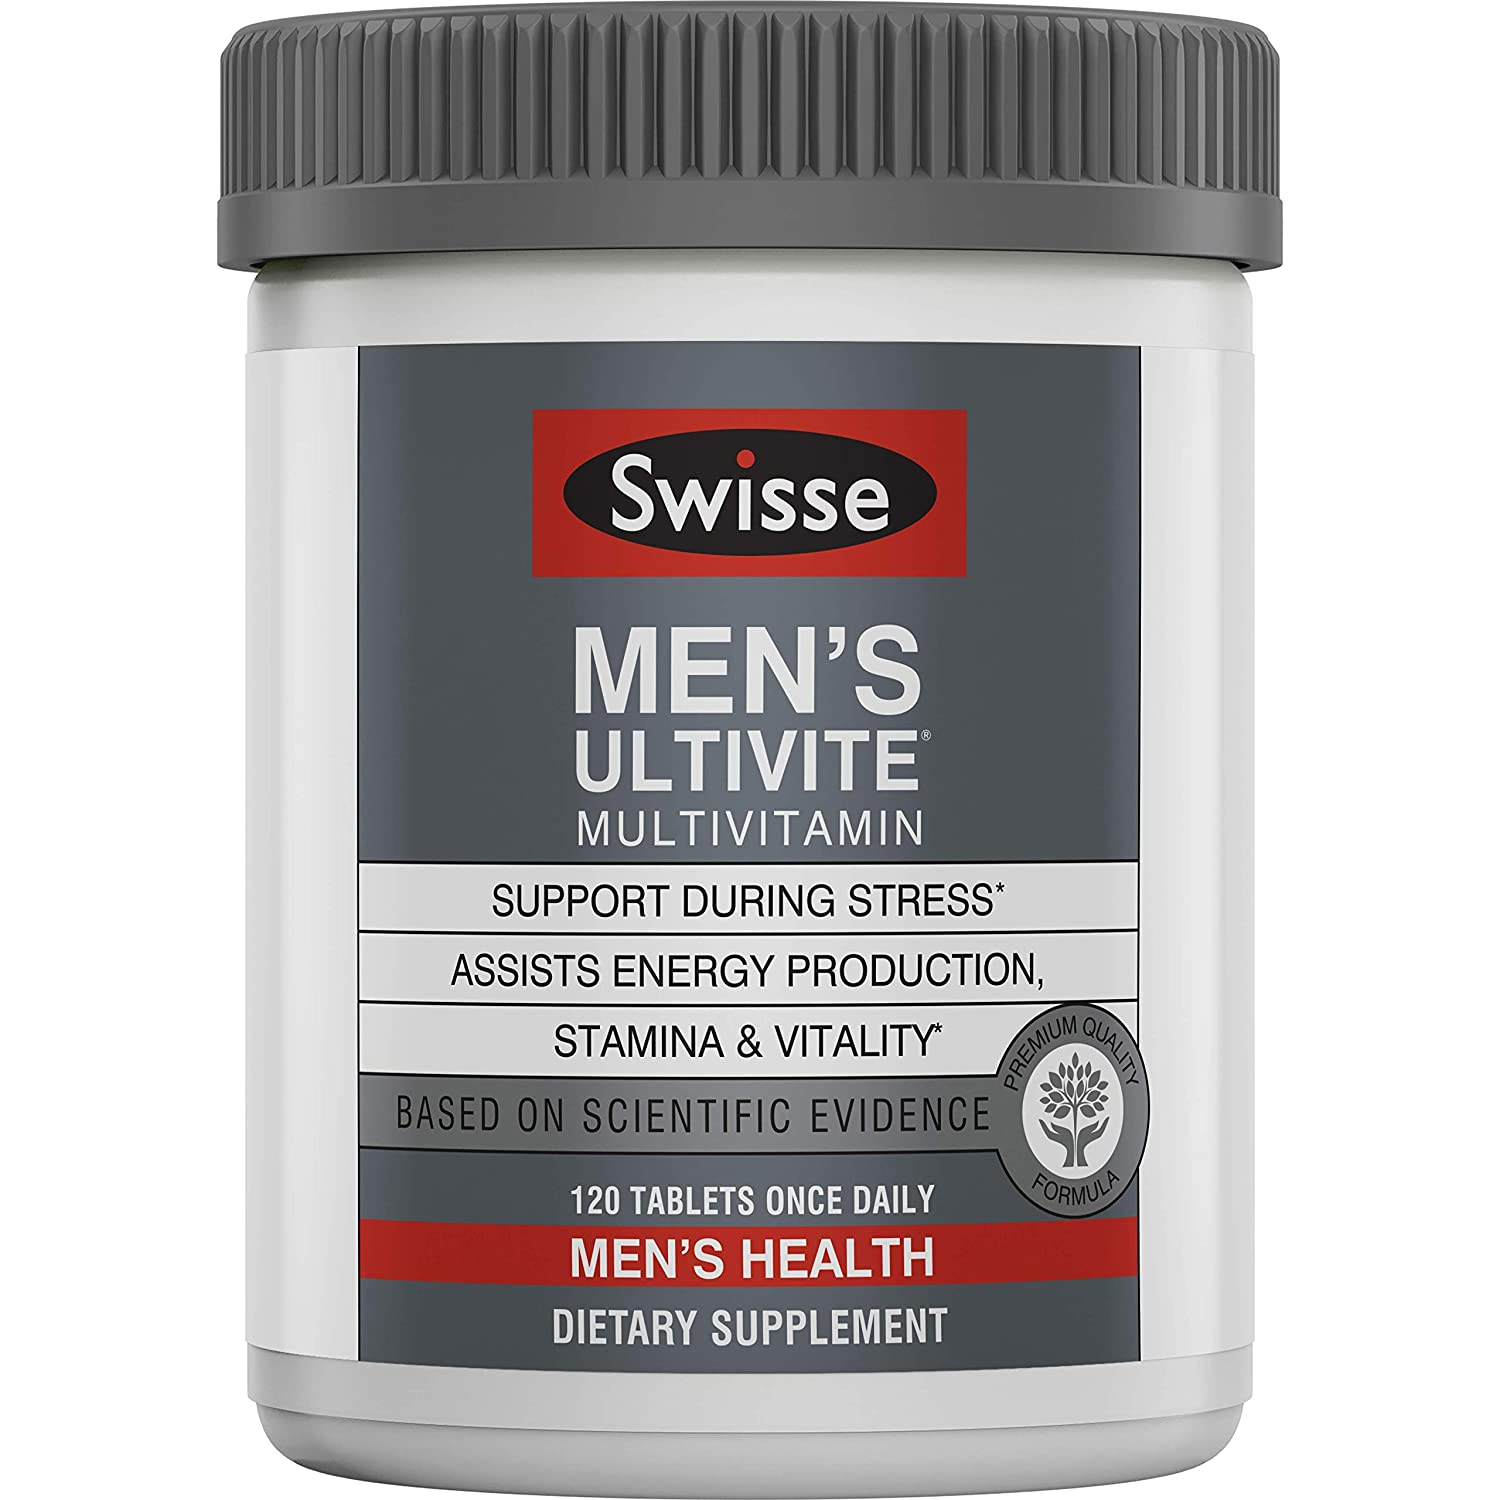 Swisse Premium Ultivite Daily Multivitamin for Men Energy Stress Support, Rich in Antioxidant Minerals Vitamin A, Vitamin C, Vitamin D, Biotin, Calcium, Zinc More 120 Count Tablets